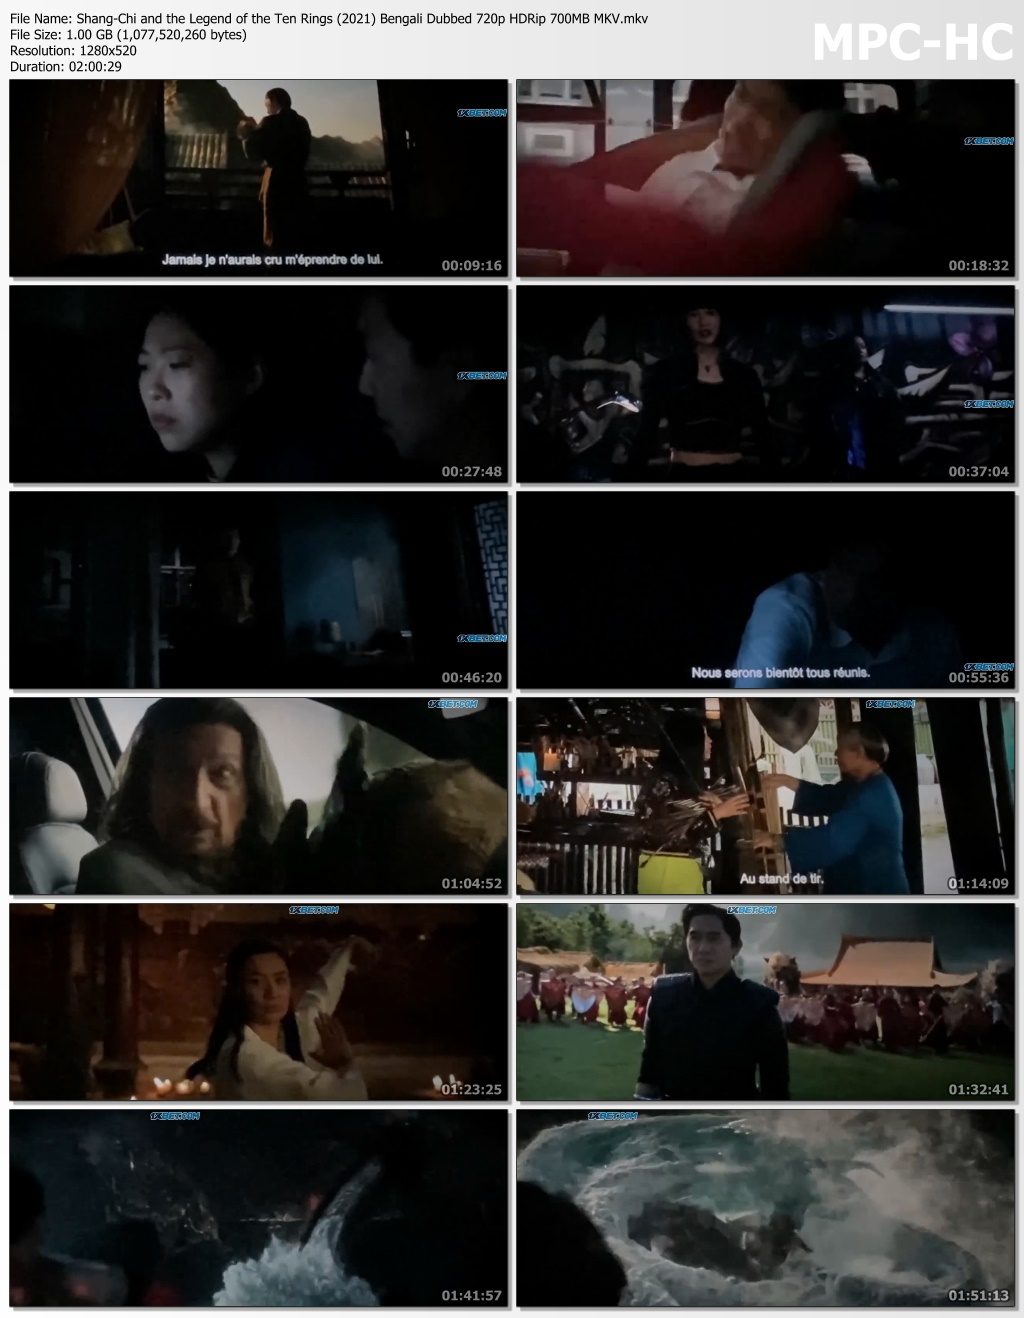 Shang-Chi-and-the-Legend-of-the-Ten-Rings-2021-Bengali-Dubbed-720p-HDRip-700-MB-MKV-mkv-thumbs